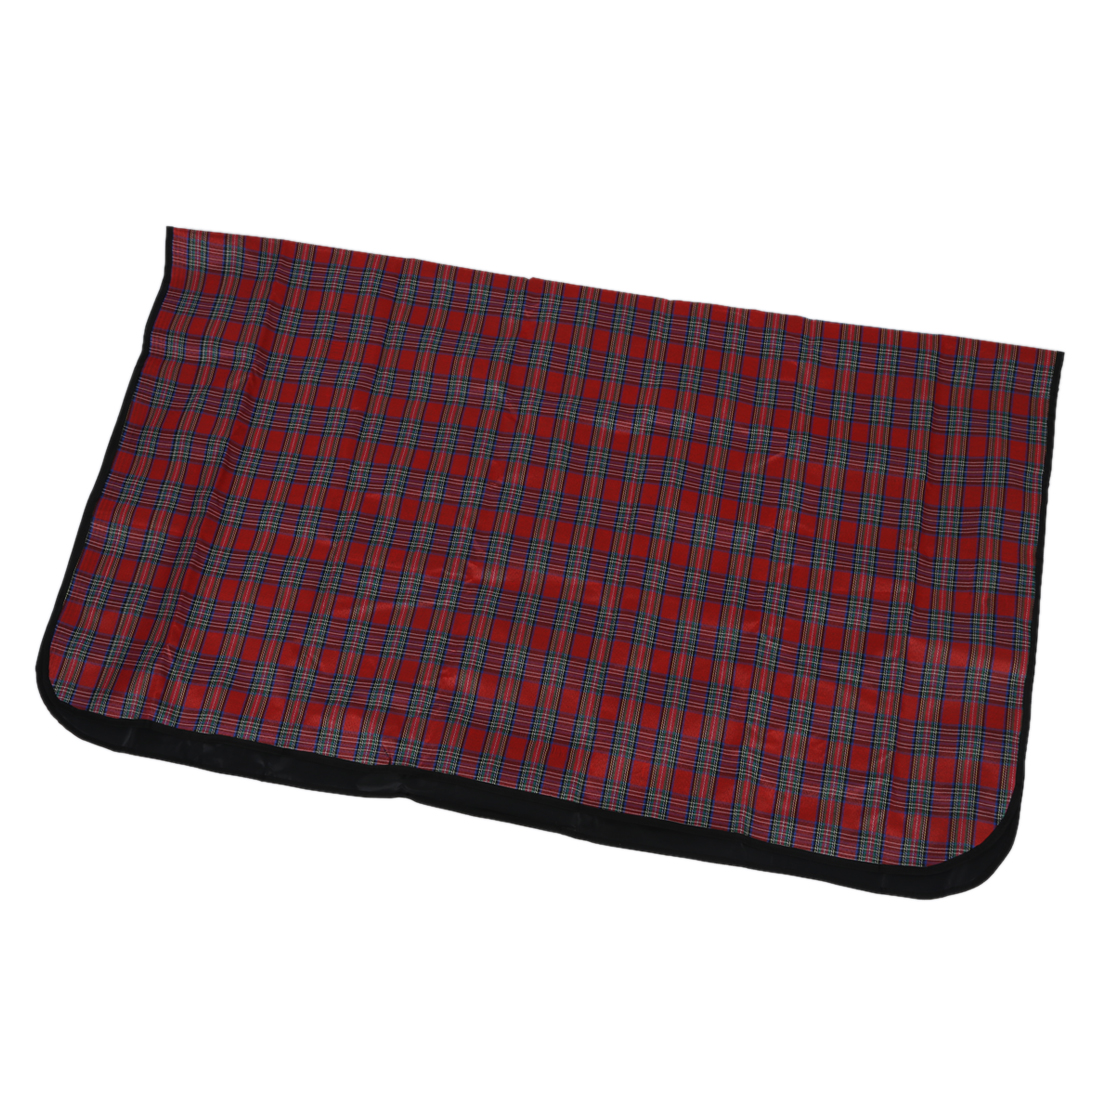 Picnic Rug Sports Direct: Foldable Waterproof Blanket Outdoor Beach Camping Festival